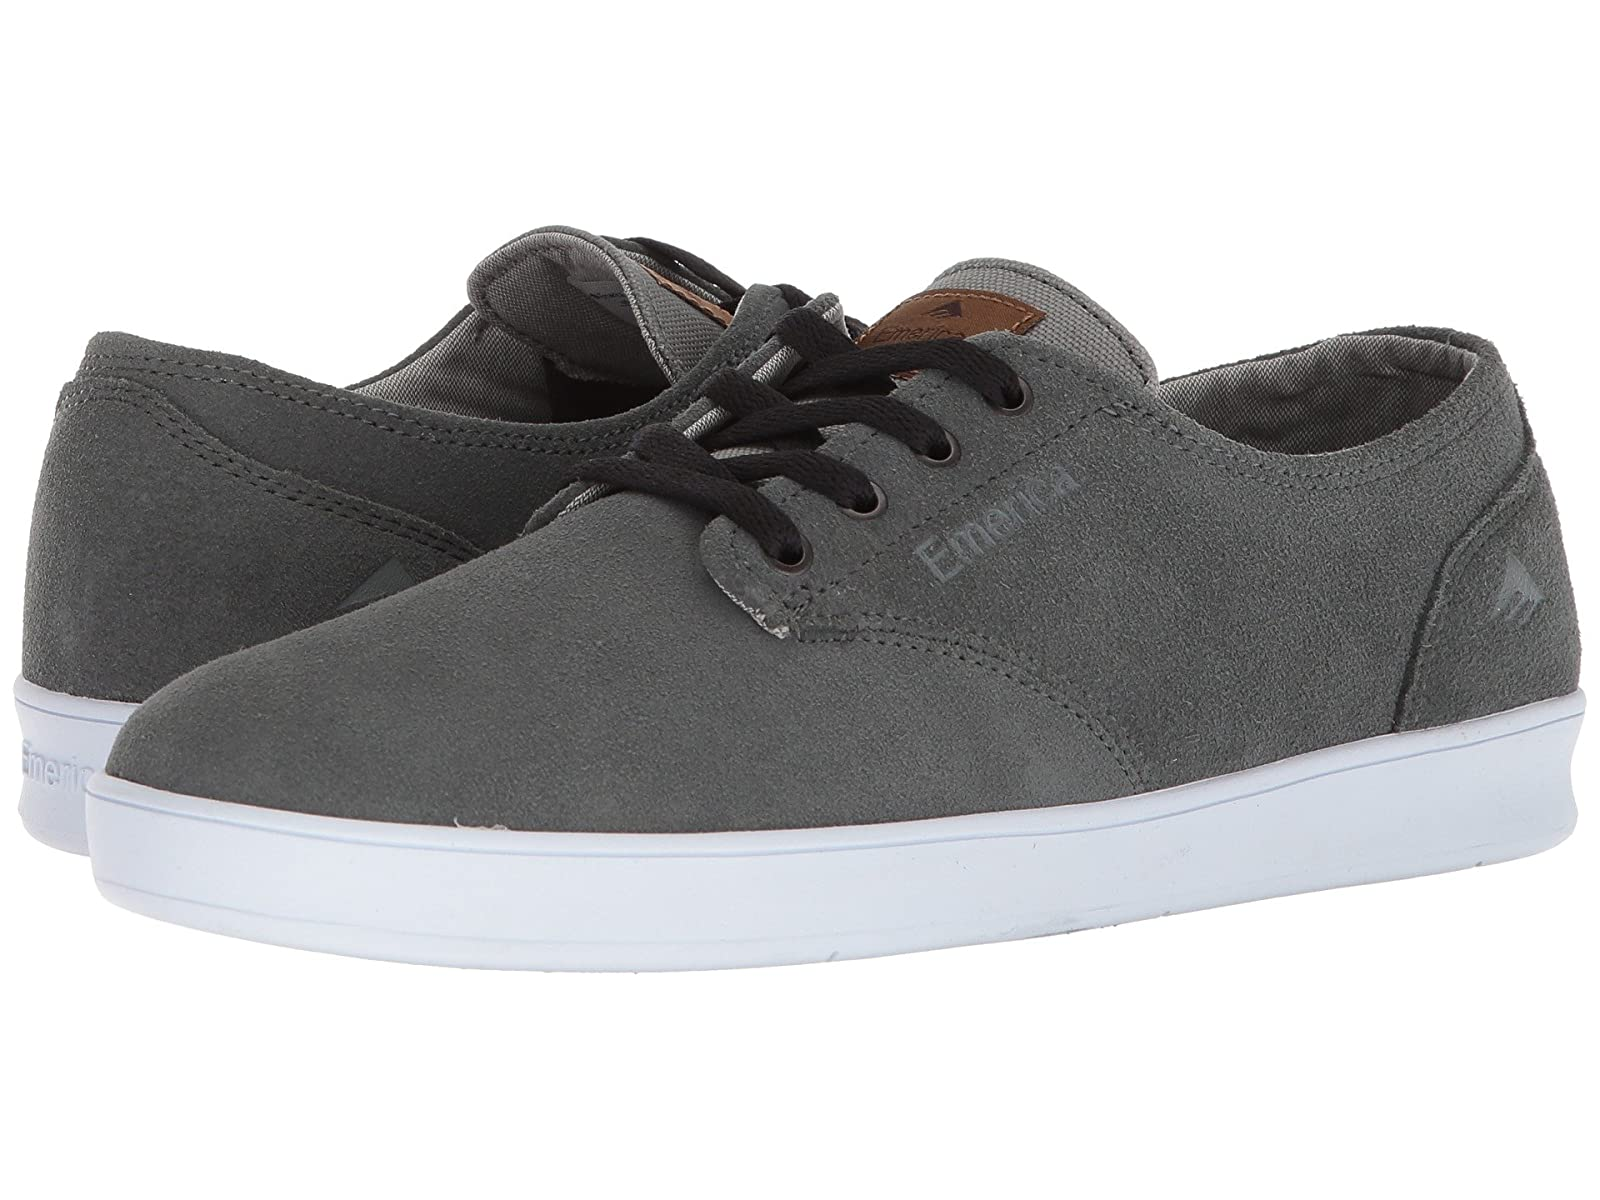 Emerica The Romero LacedCheap and distinctive eye-catching shoes